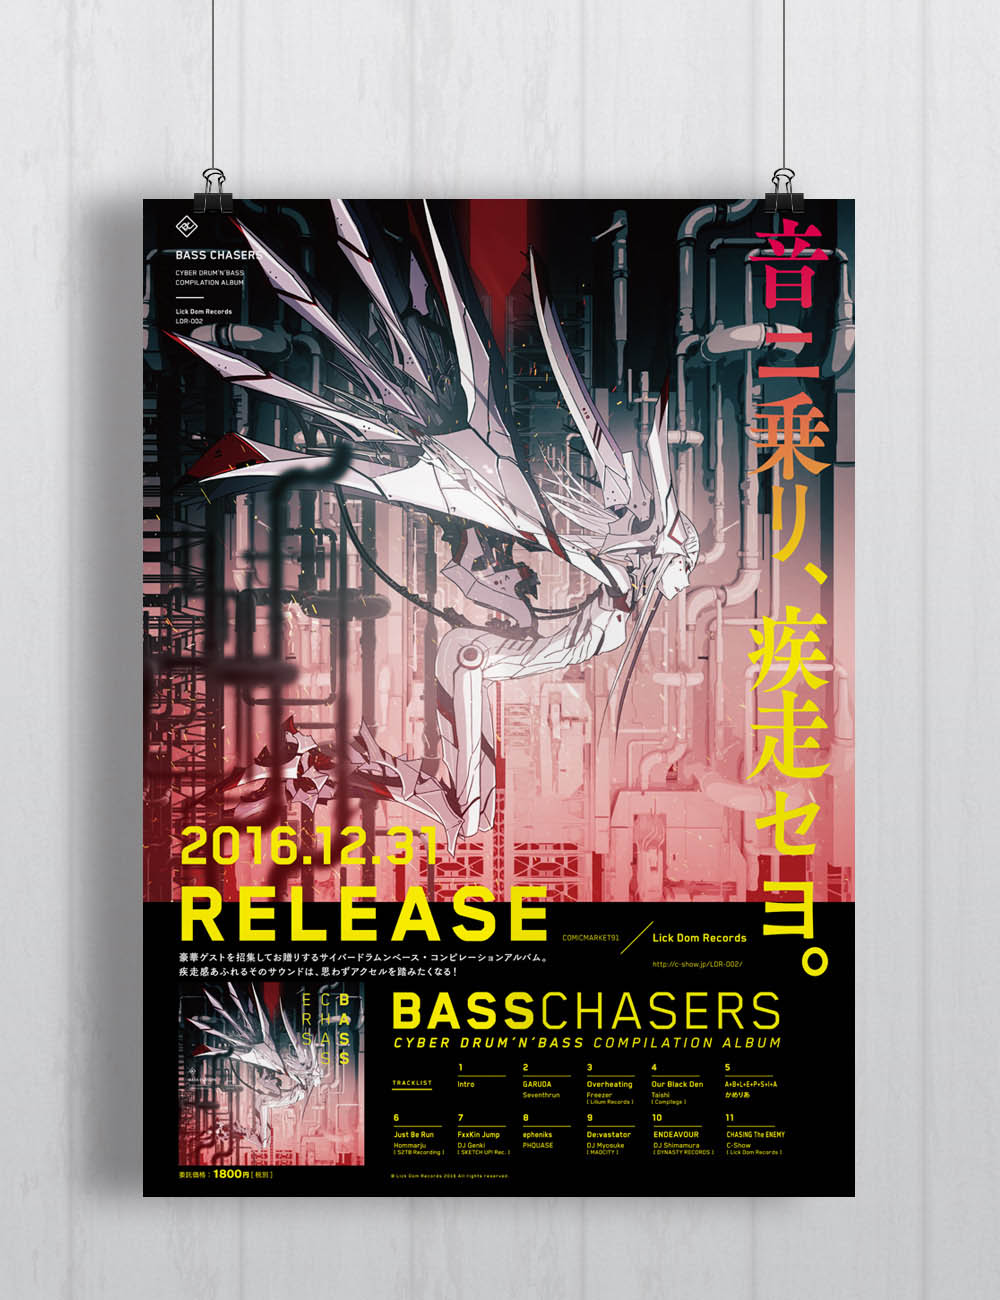 BASS CHASERS ポスターデザイン